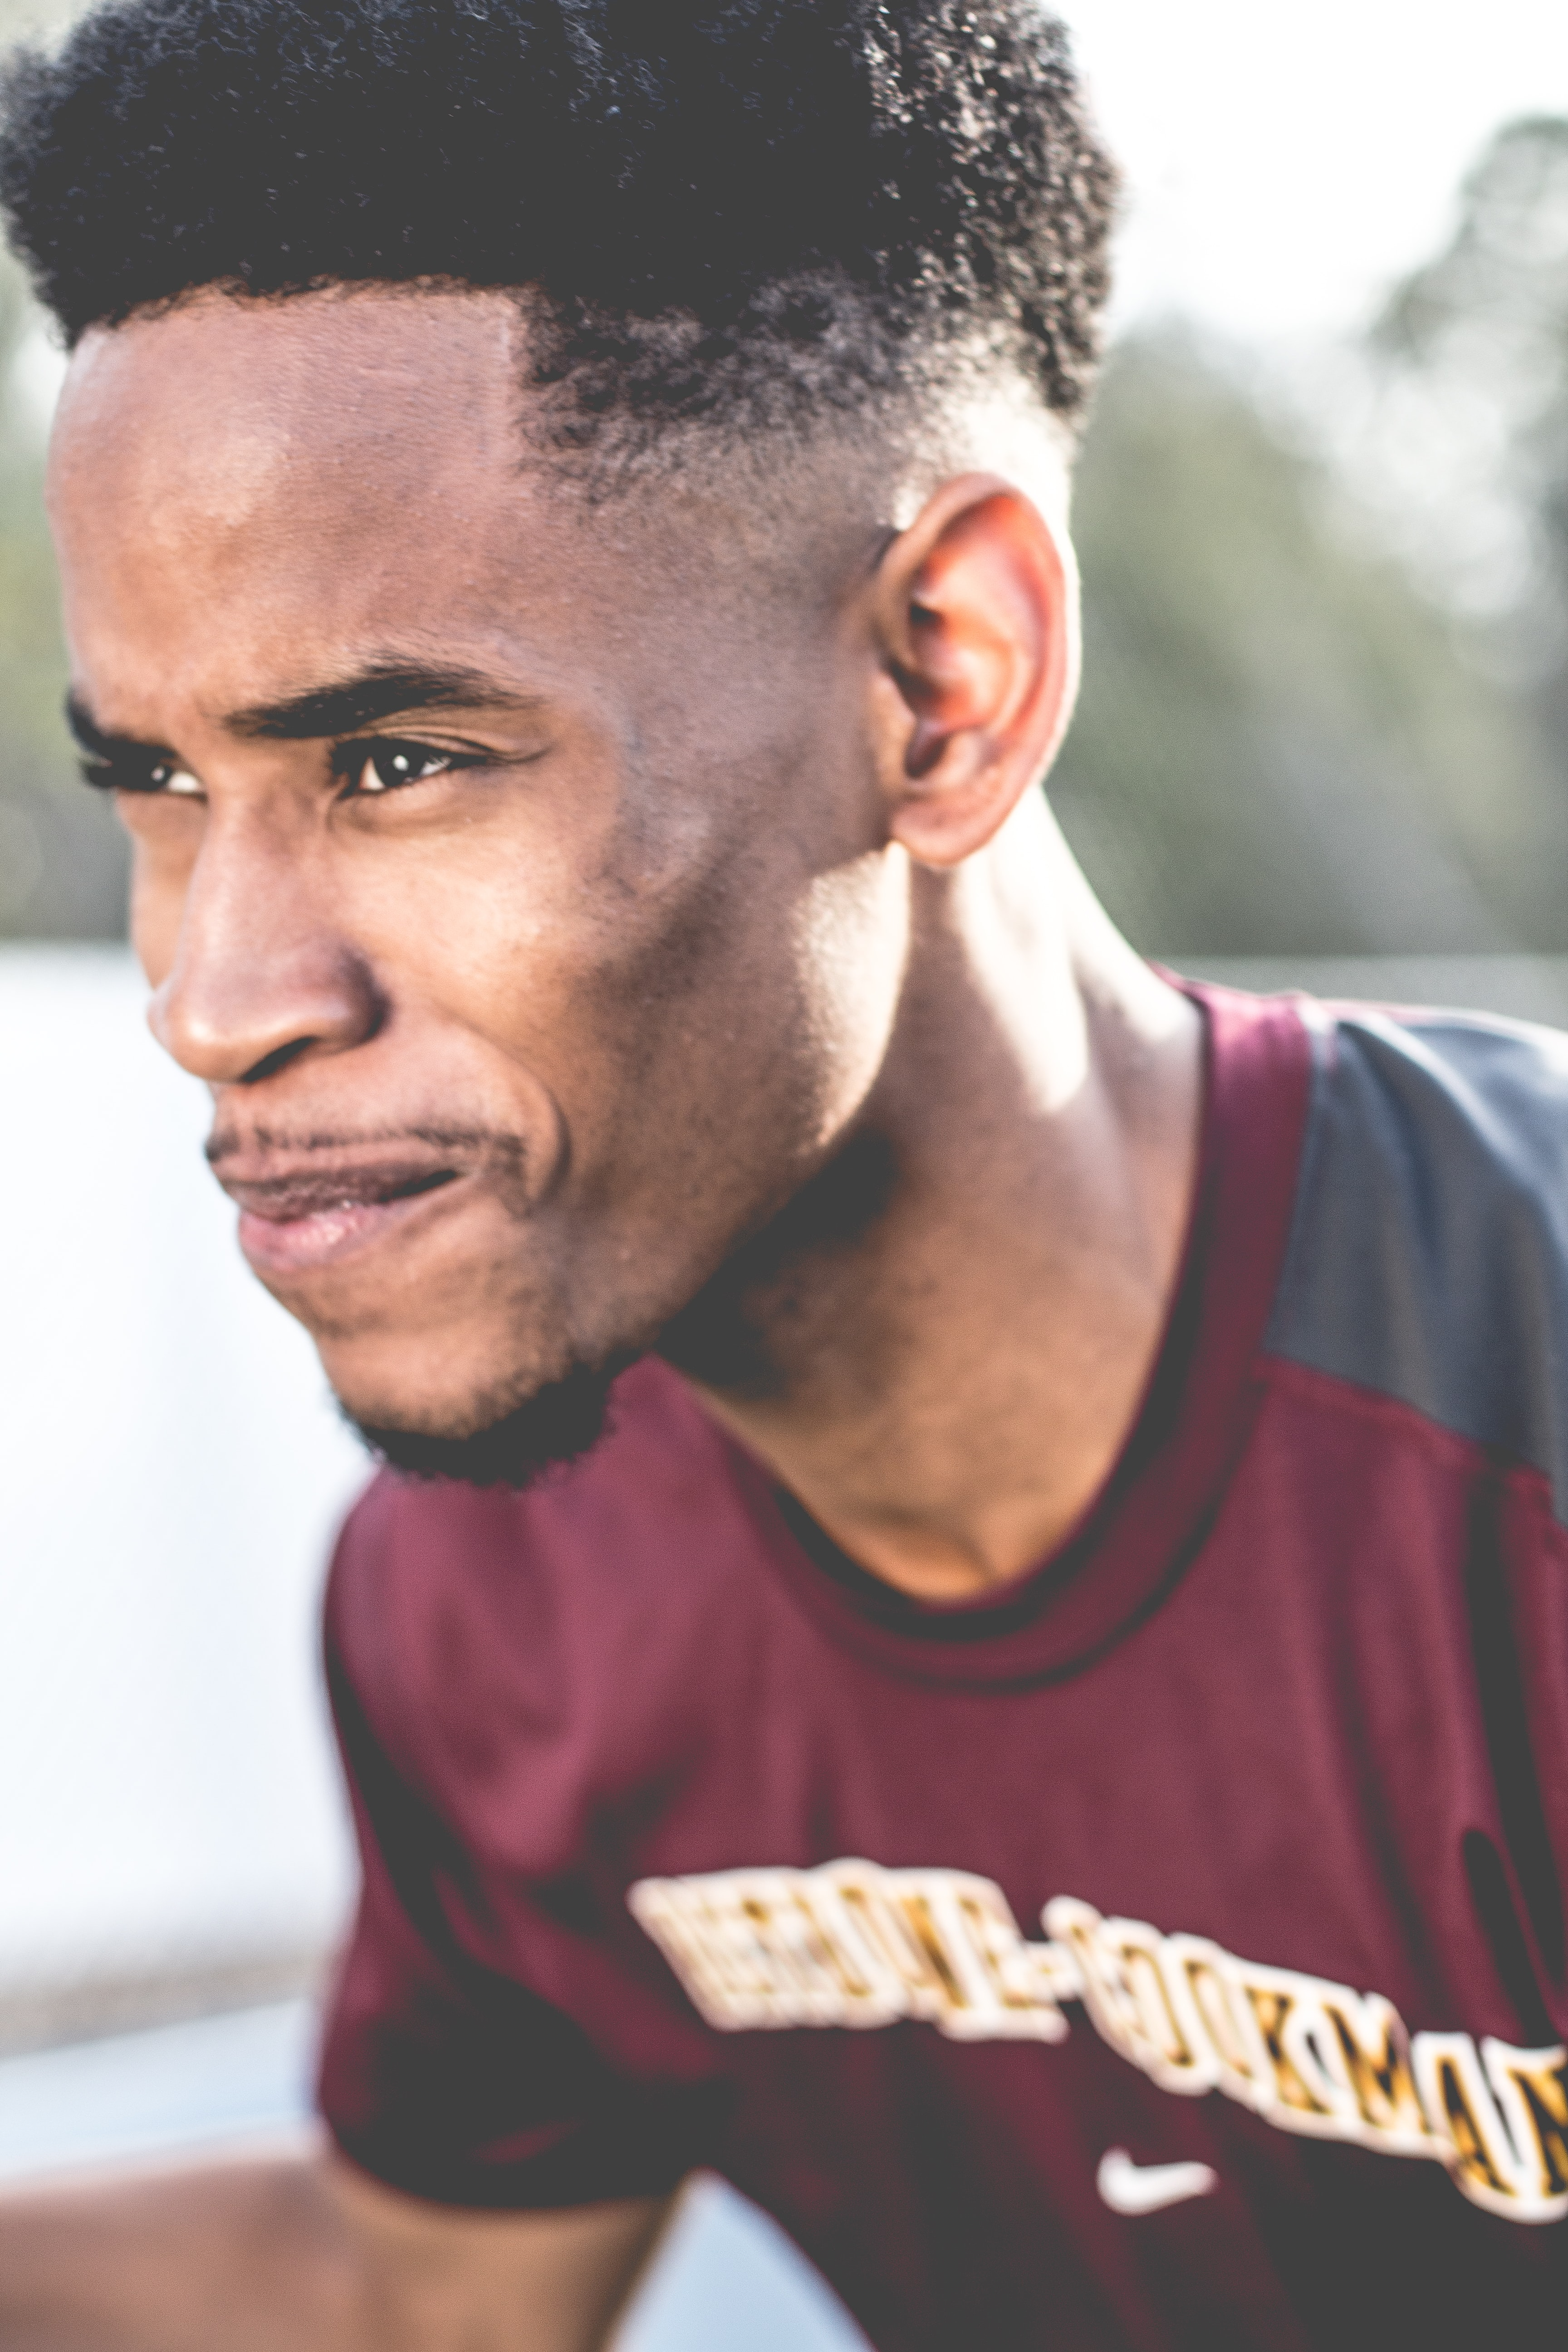 A close-up view of a man in a maroon sportswear.